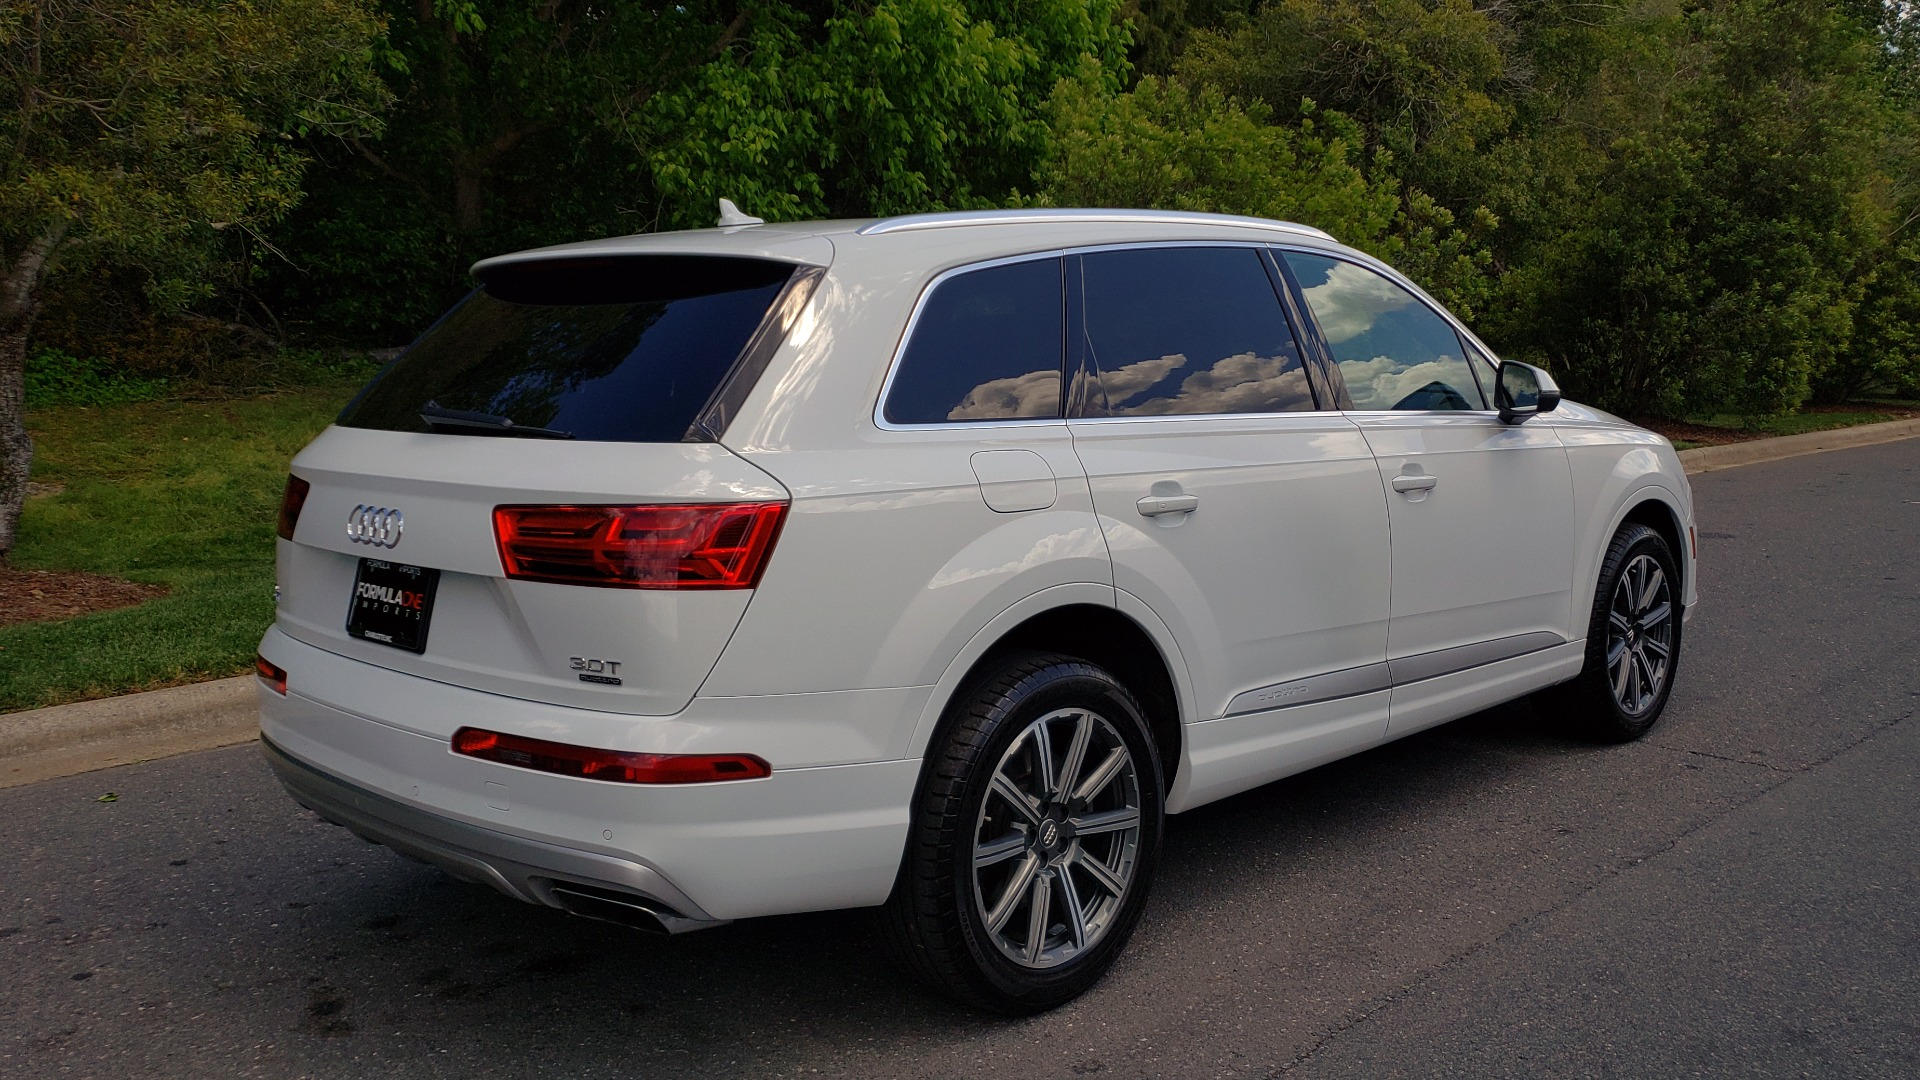 Used 2017 Audi Q7 PREMIUM PLUS / VISION PKG / NAV / PANO-ROOF / 3-ROW / REARVIEW for sale Sold at Formula Imports in Charlotte NC 28227 6